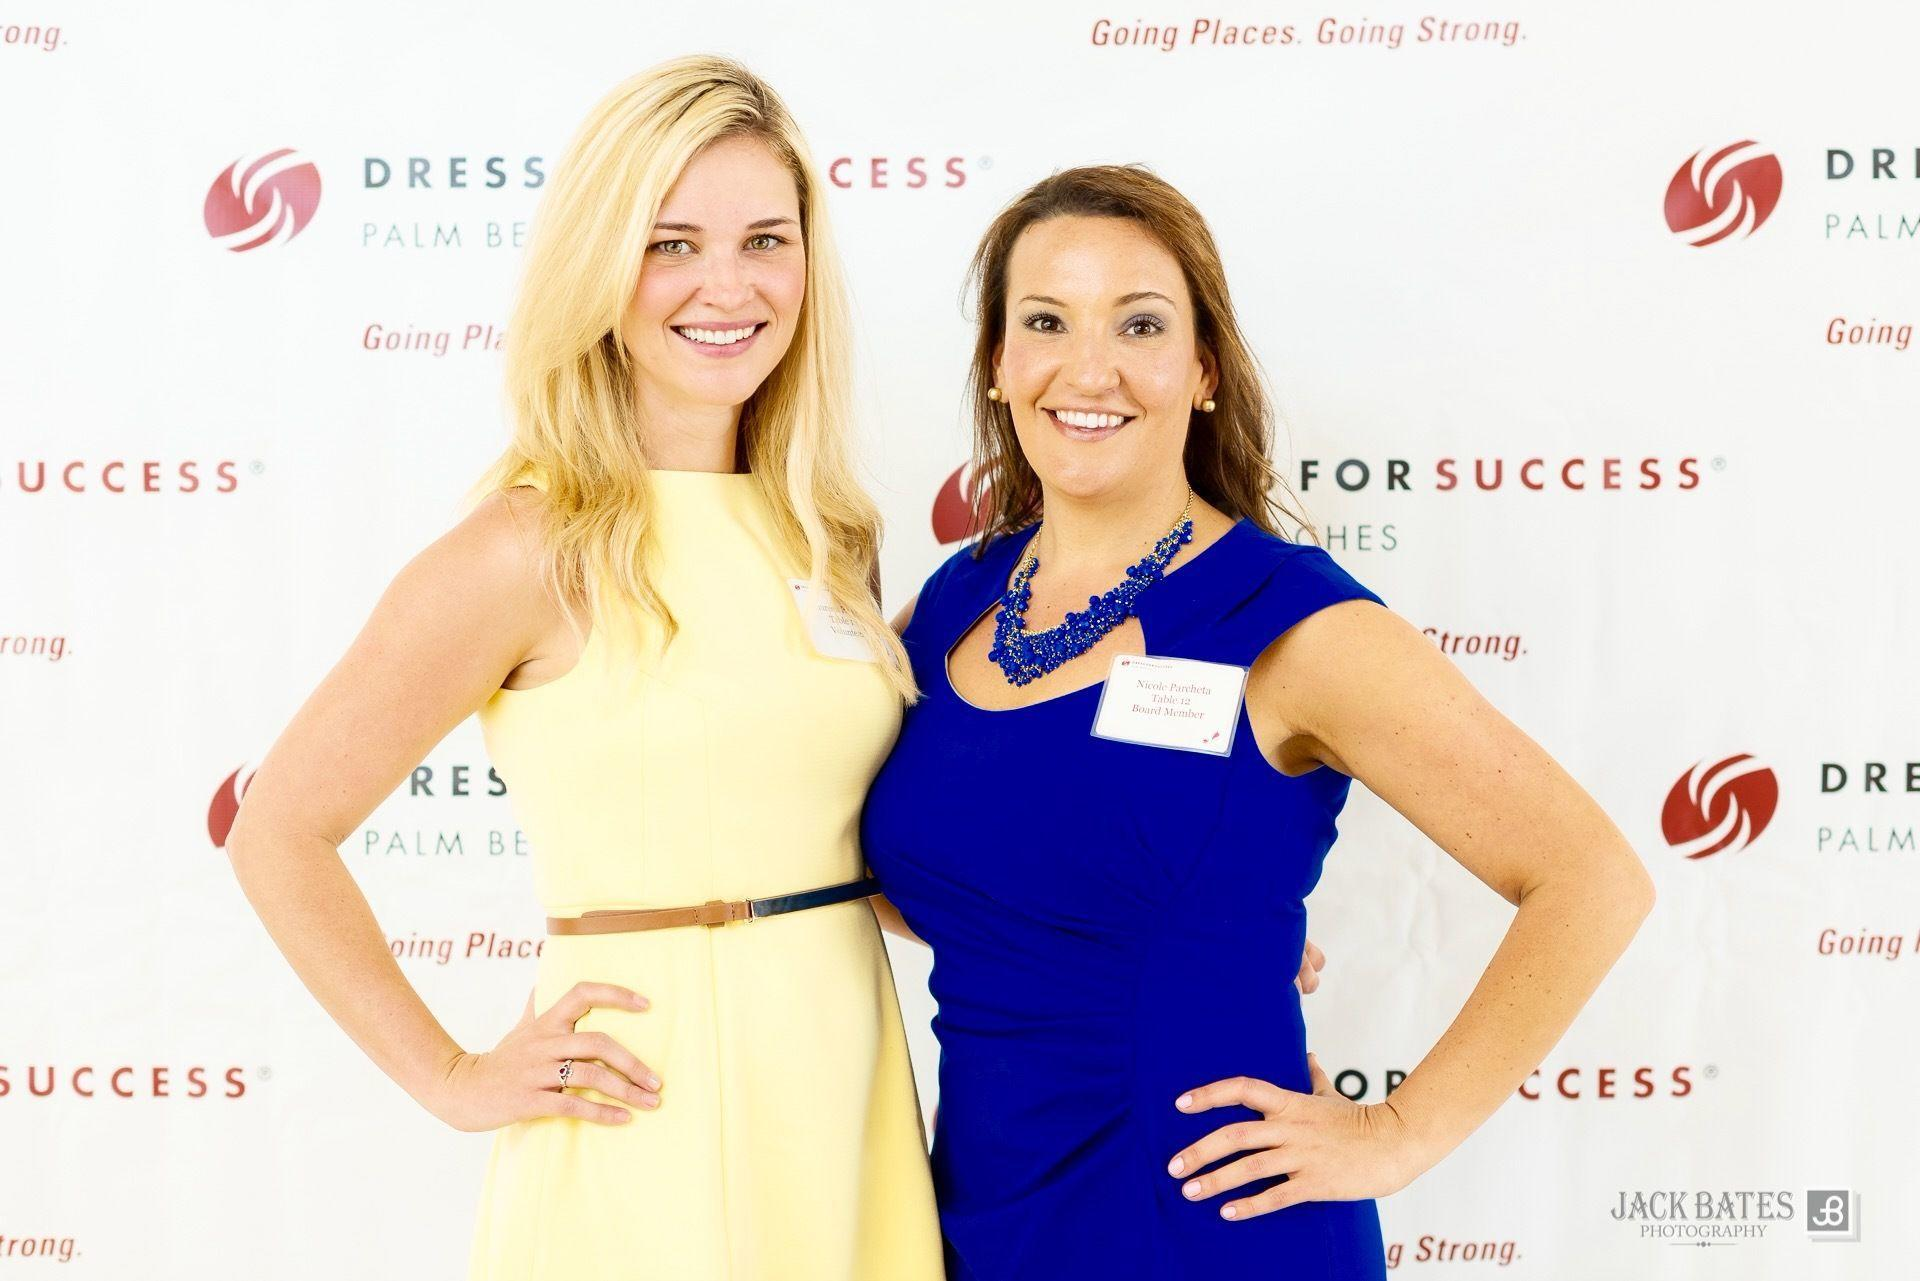 Highres Dress For Success Palm Yespalm Beaches Young Executive Women Charity Networking Beach Fl Meetup